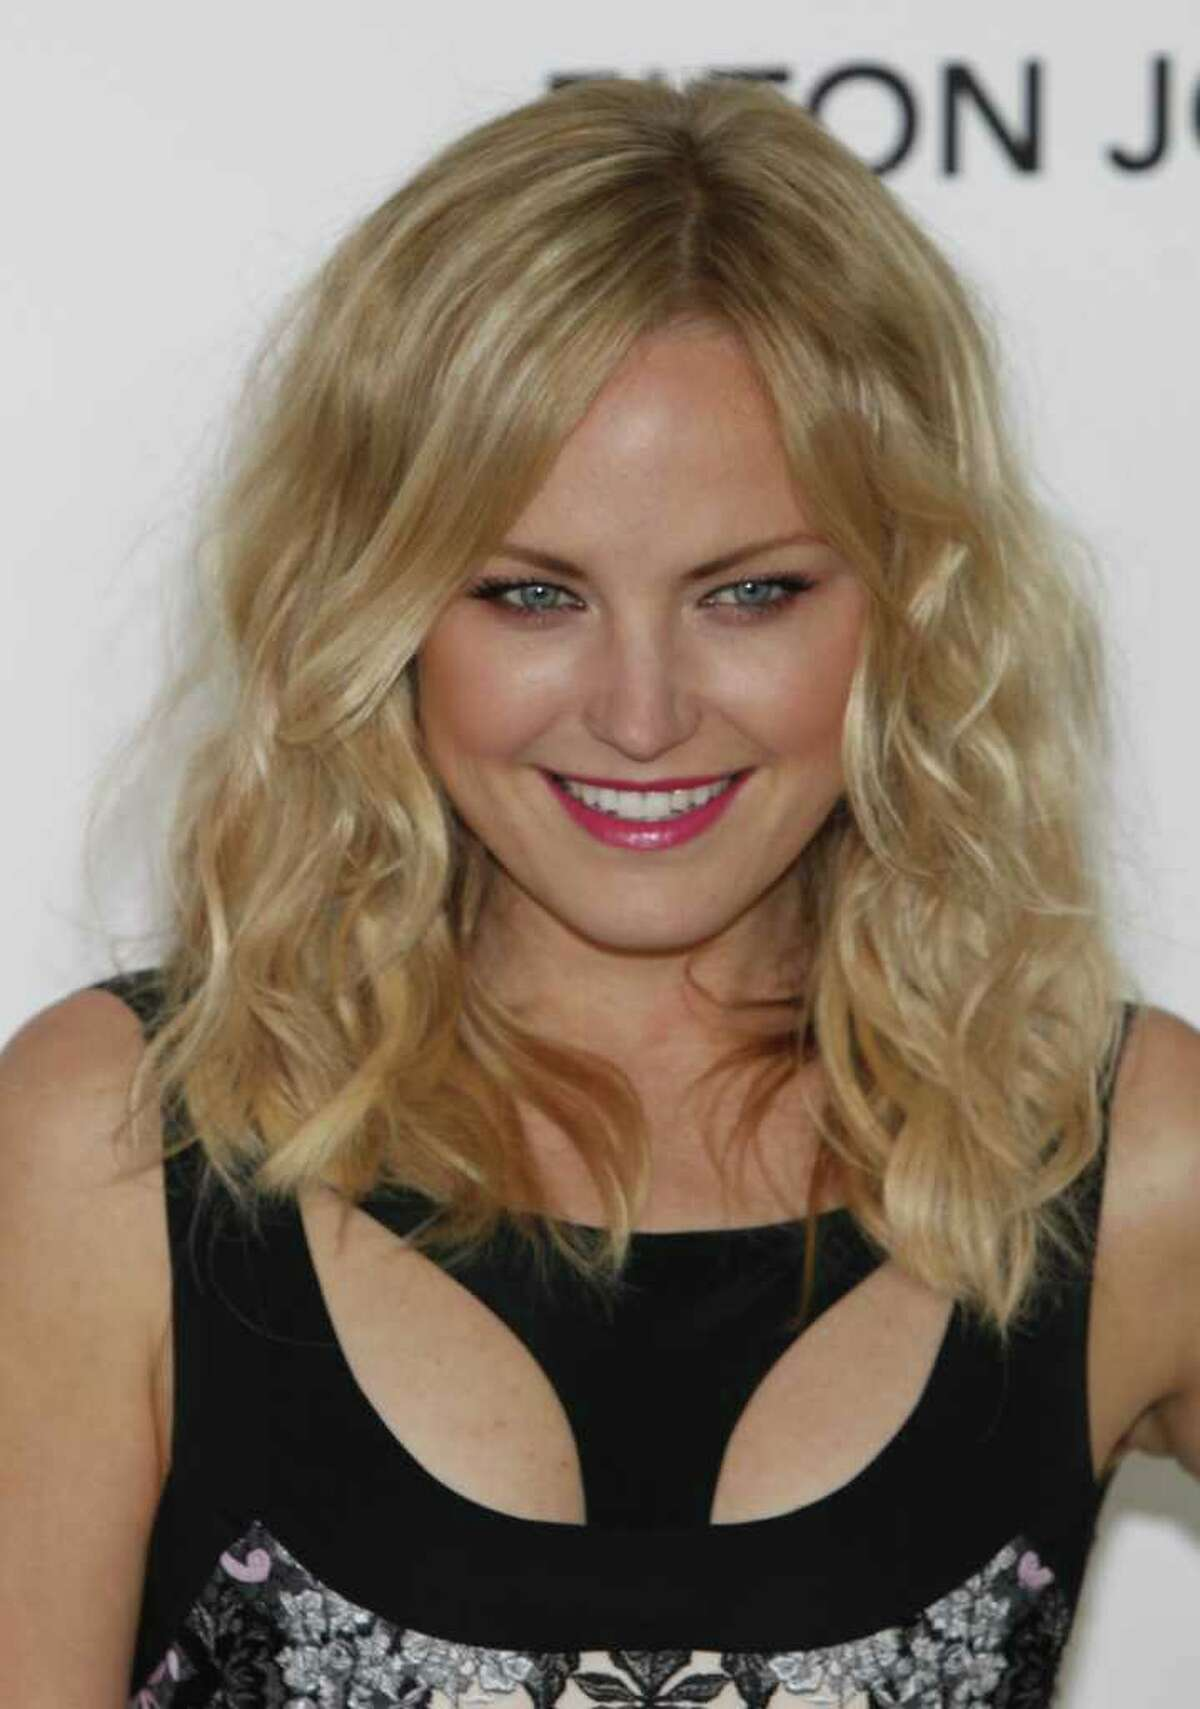 Malin Akerman arrives at the 20th Annual Elton John AIDS Foundation Academy Awards Viewing Party, for the 84th Annual Academy Awards, in the City of West Hollywood Park on February 26, 2012 in West Hollywood, California.